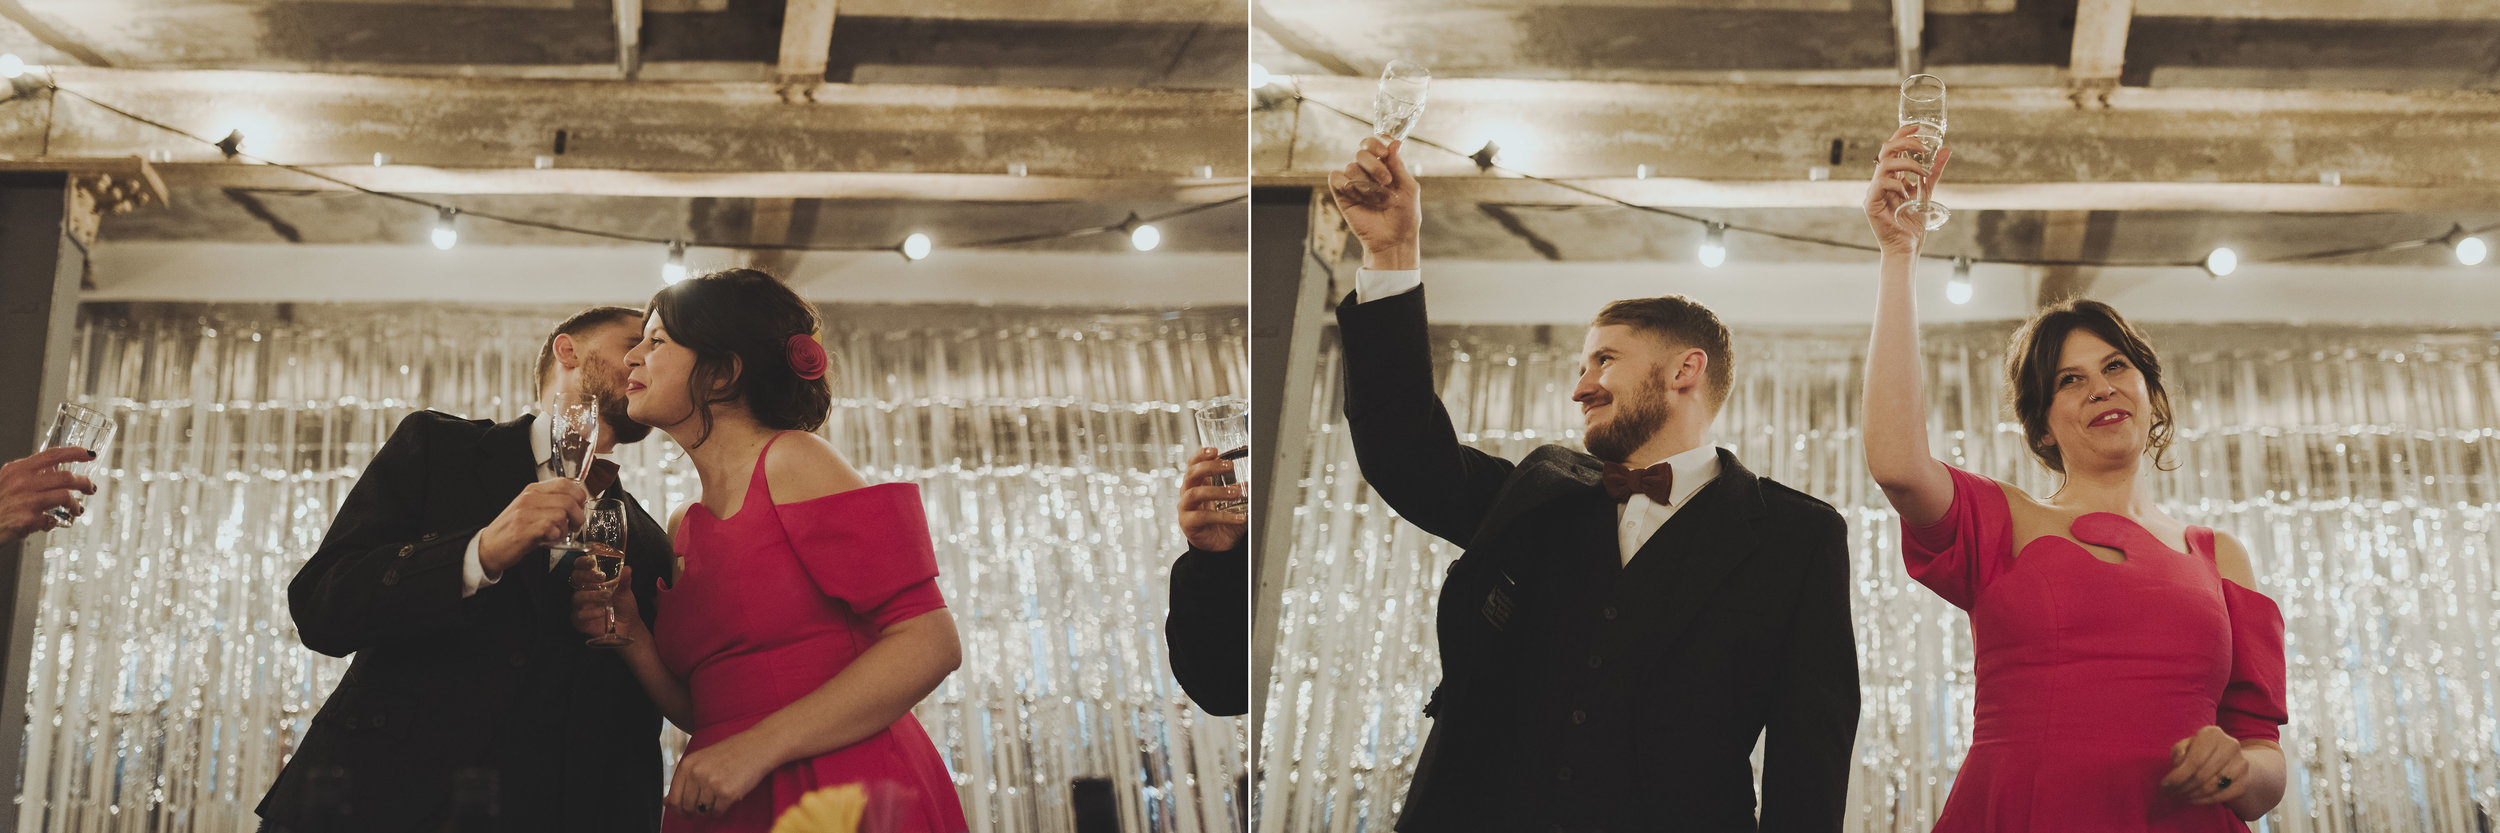 Summerhall and The Biscuit Factory Wedding 50.jpg